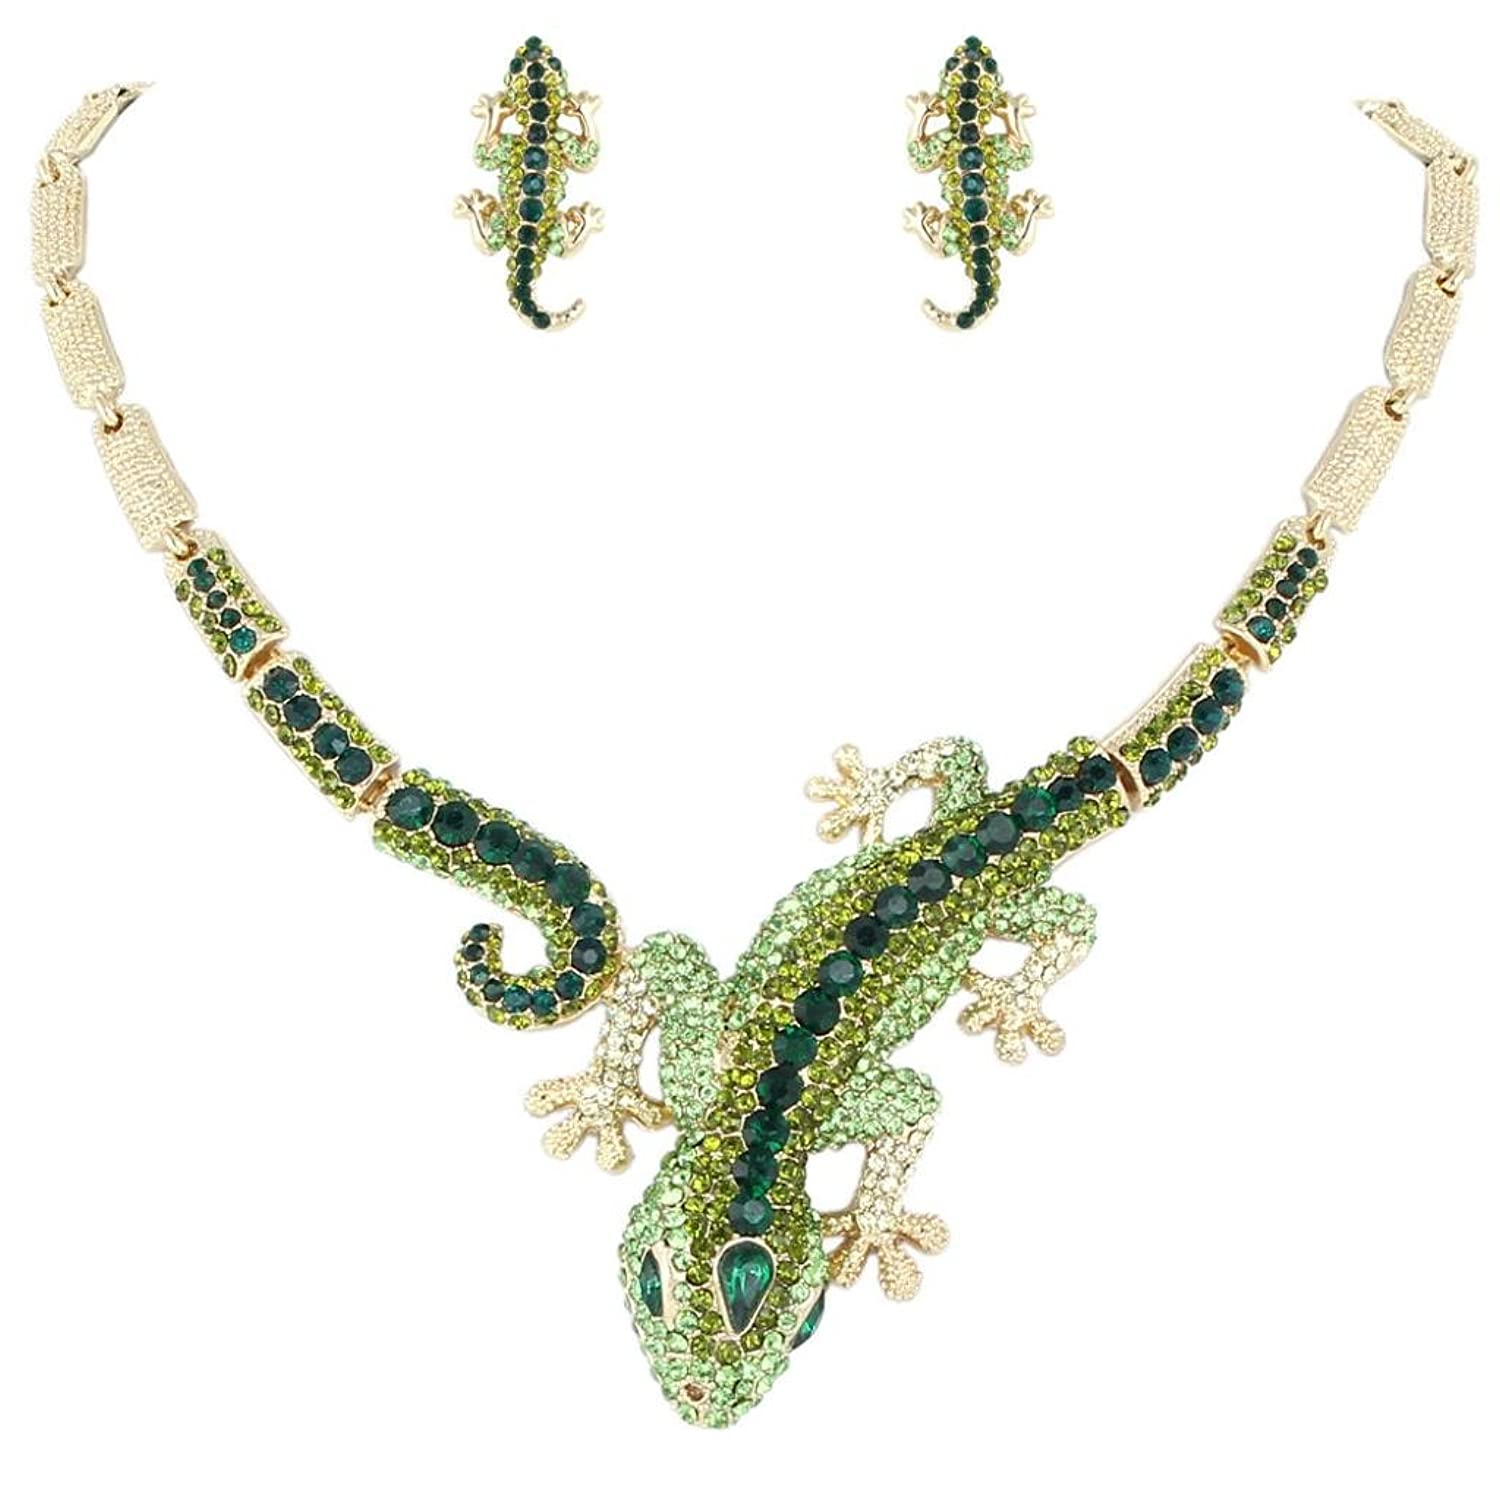 EVER FAITH Austrian Crystal Art Deco Gecko Statement Necklace Earrings Set